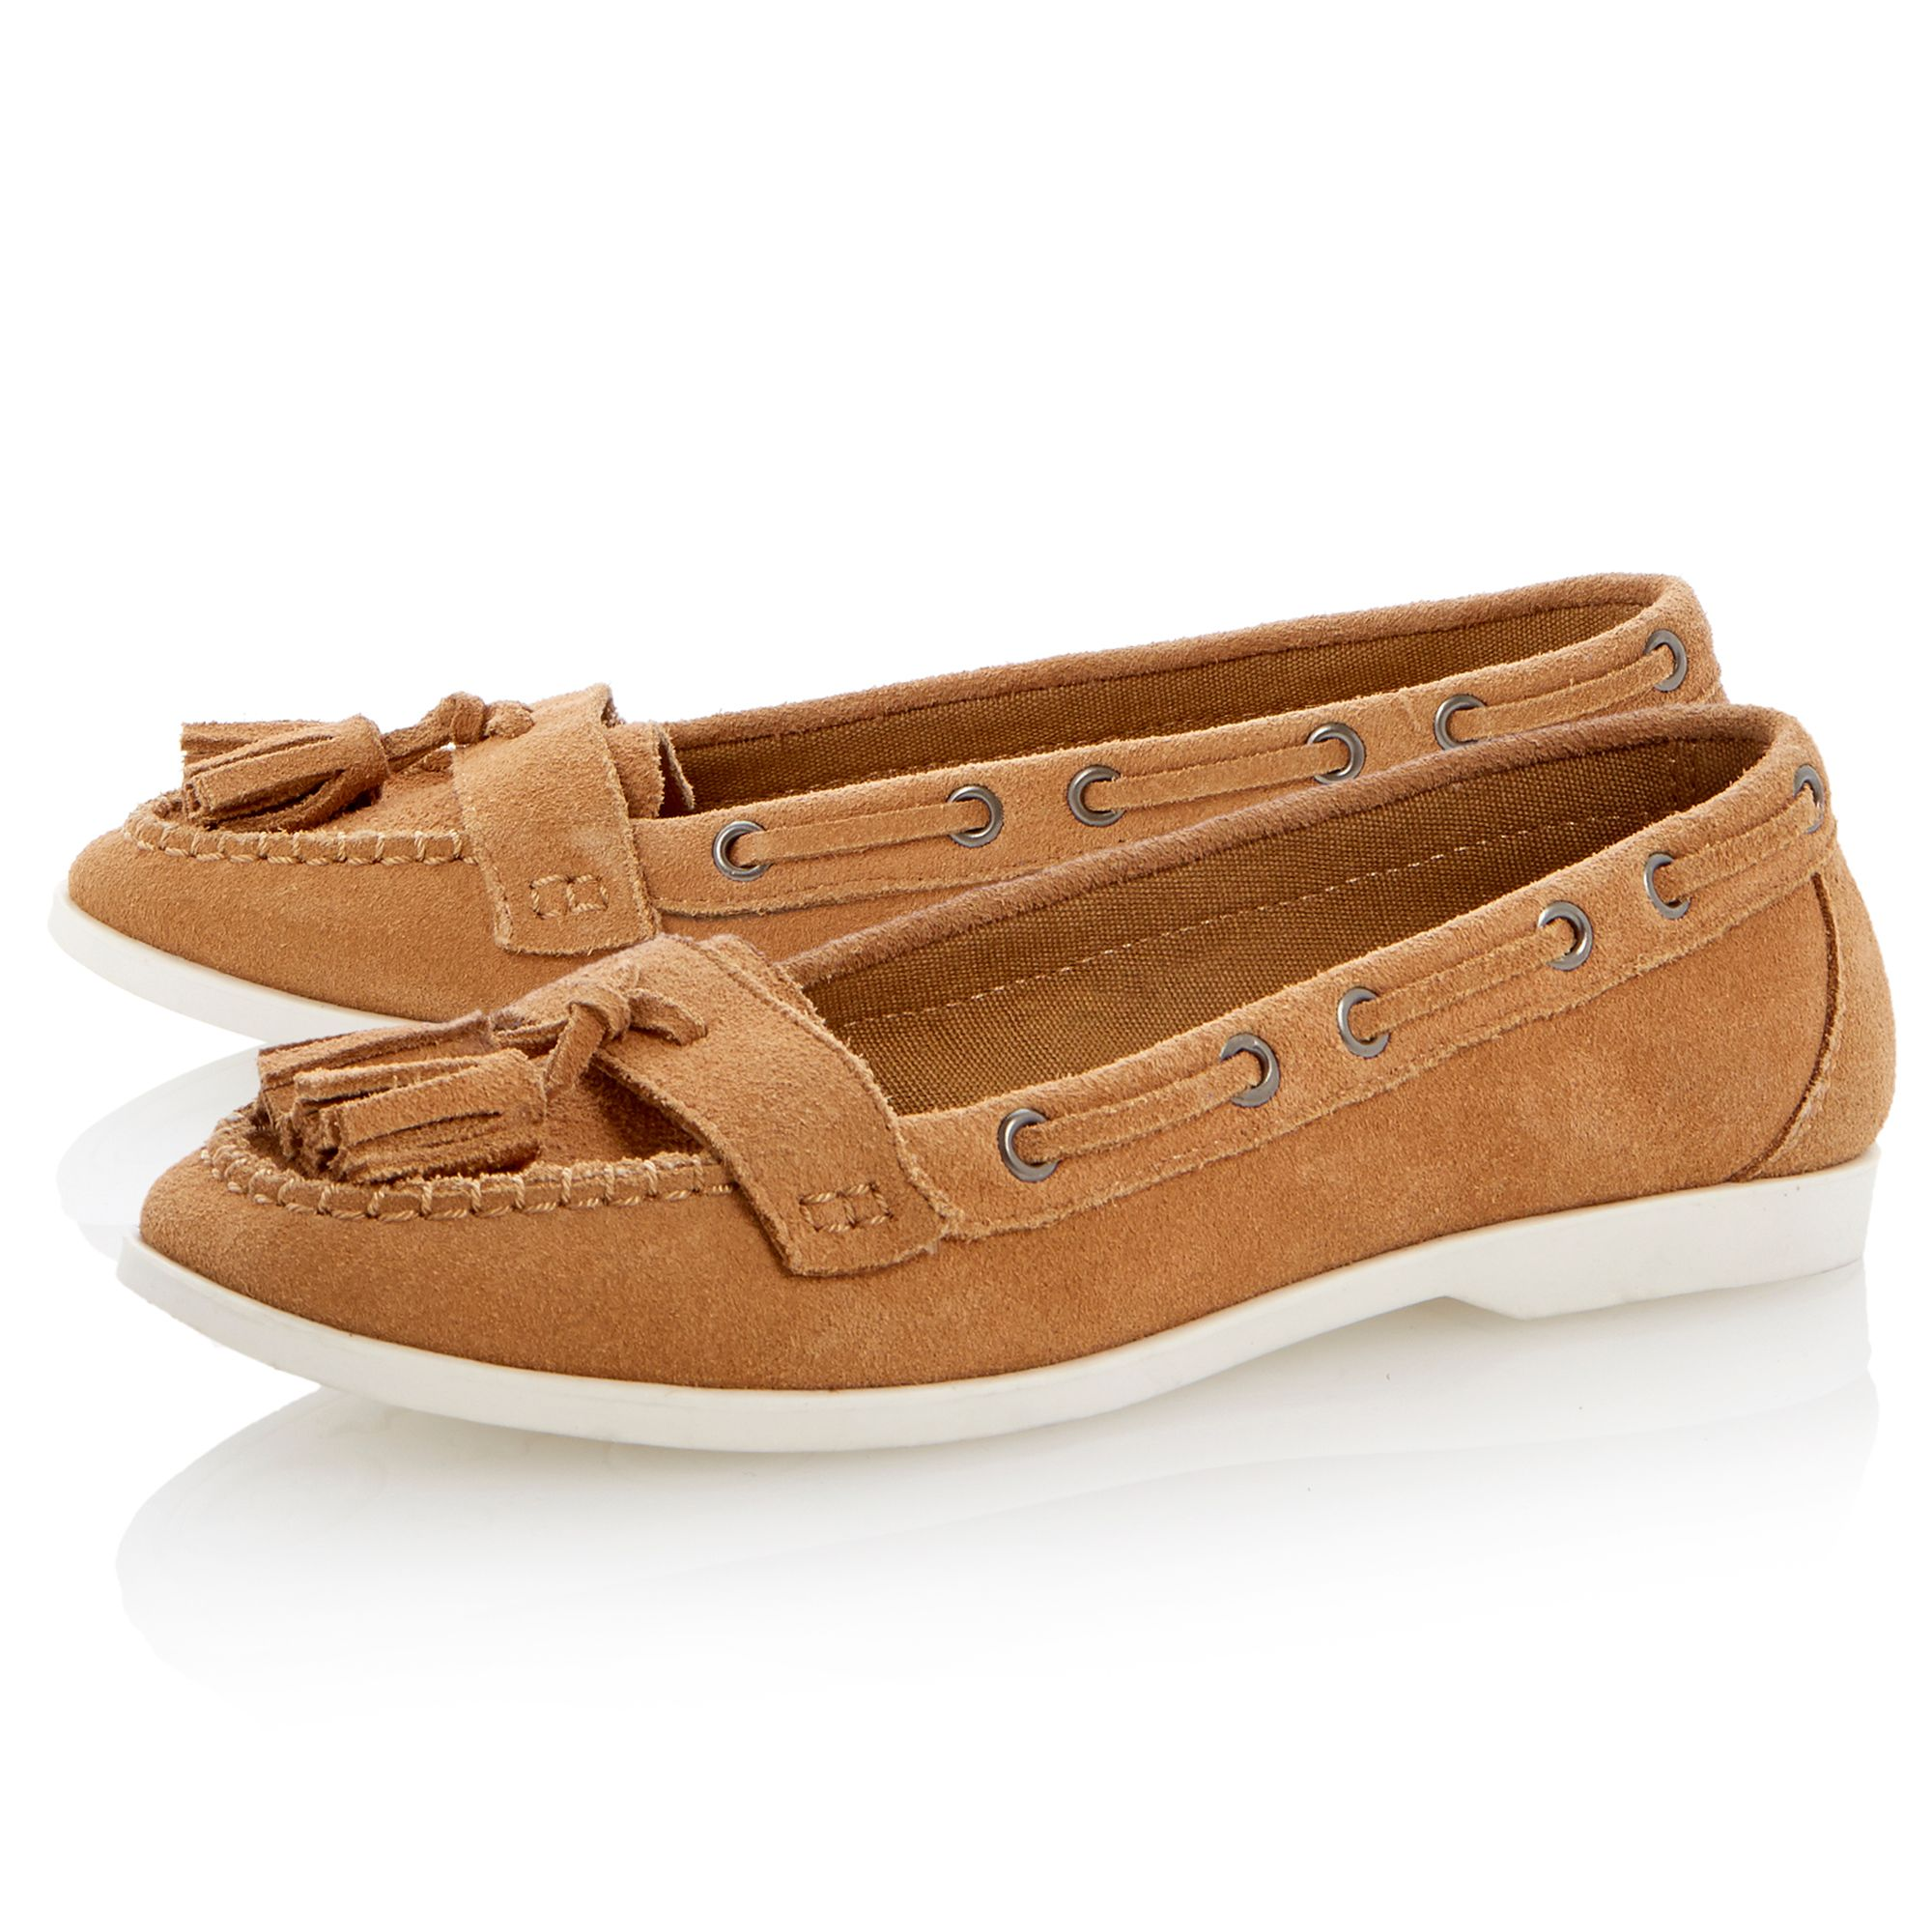 Lulah suede flat round toe boat shoes